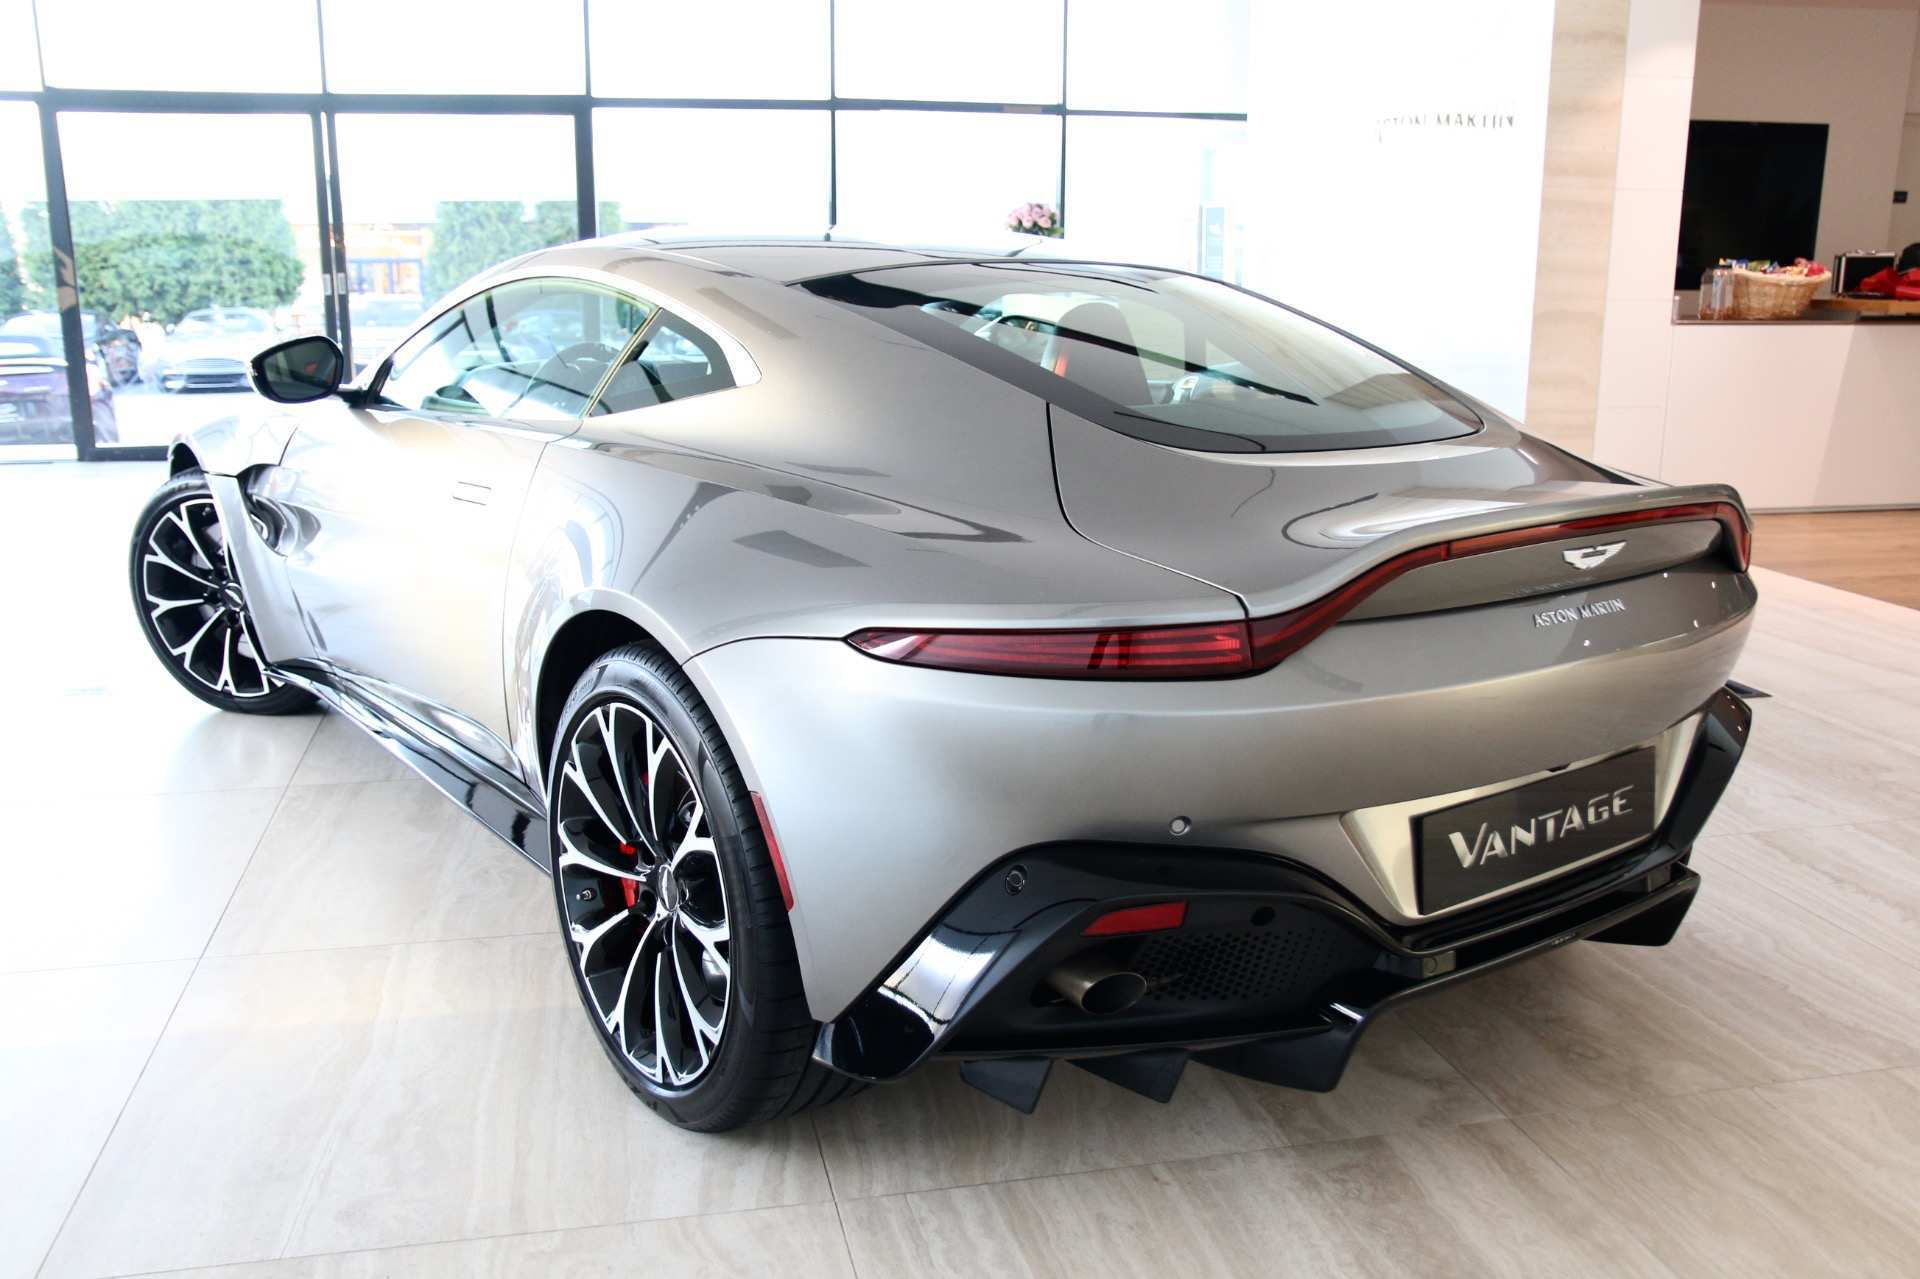 80 The 2019 Aston Martin Vanquish Price Pricing with 2019 Aston Martin Vanquish Price